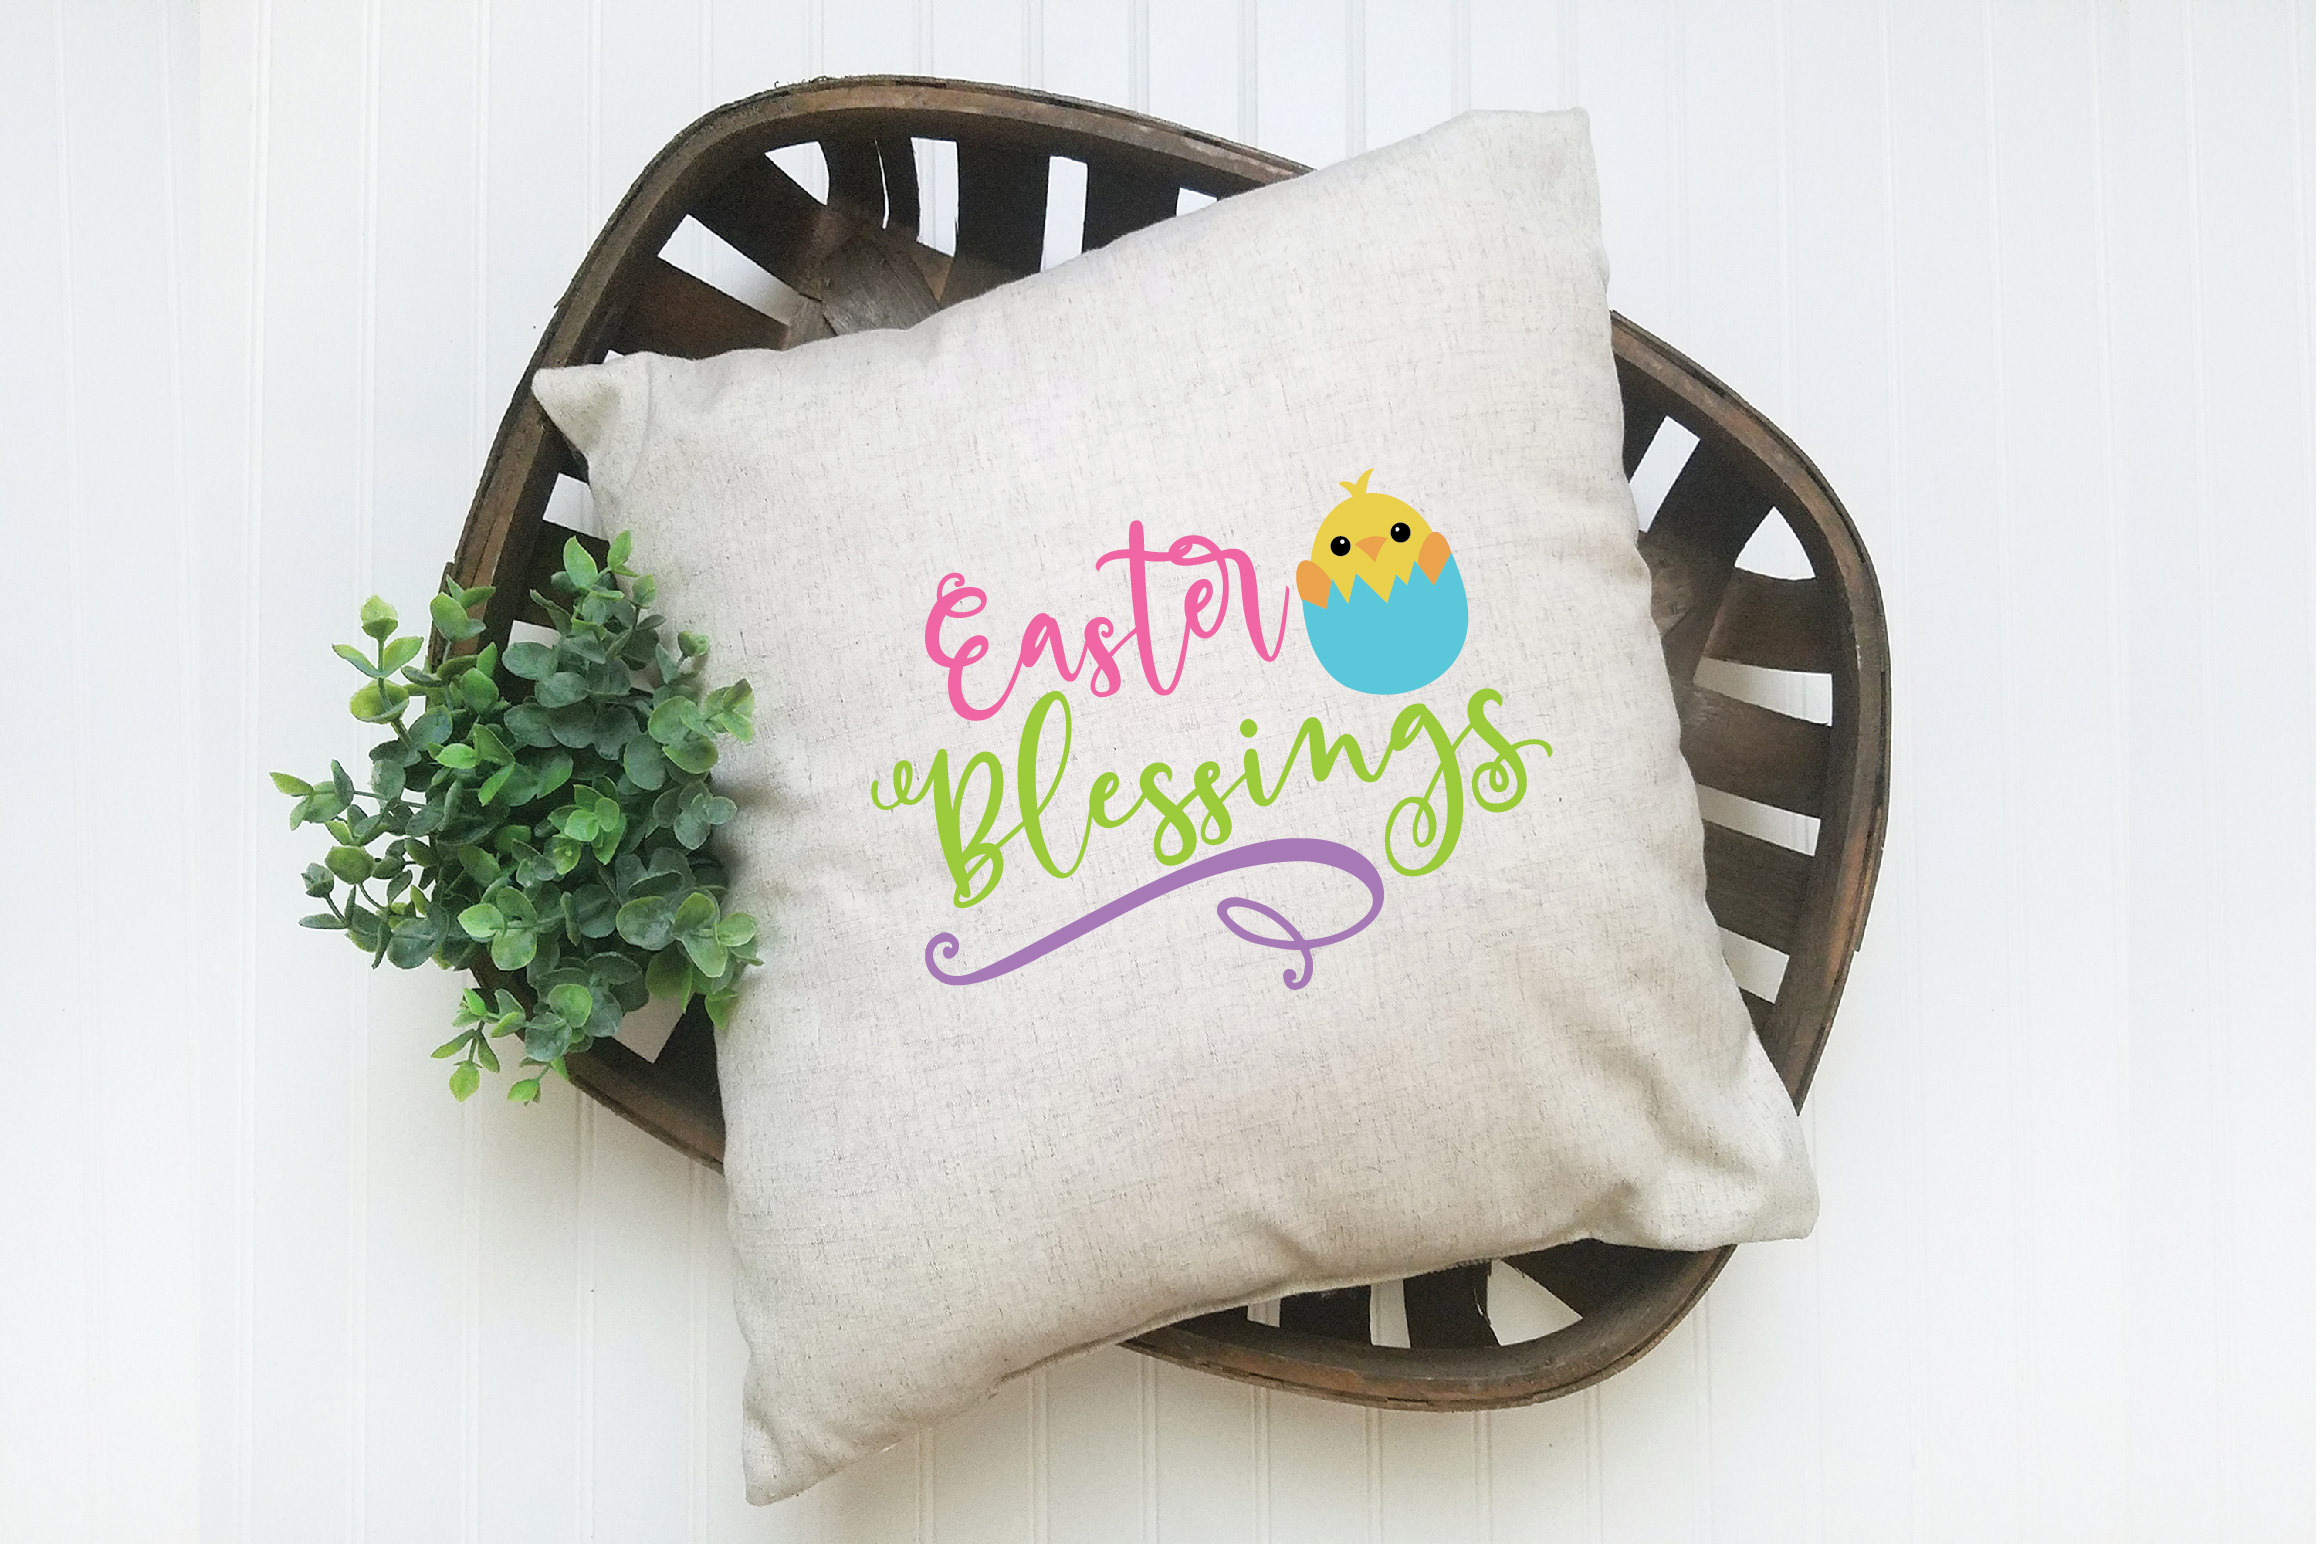 Easter SVG Cut File - Easter Blessings SVG DXF EPS PNG AI example image 2